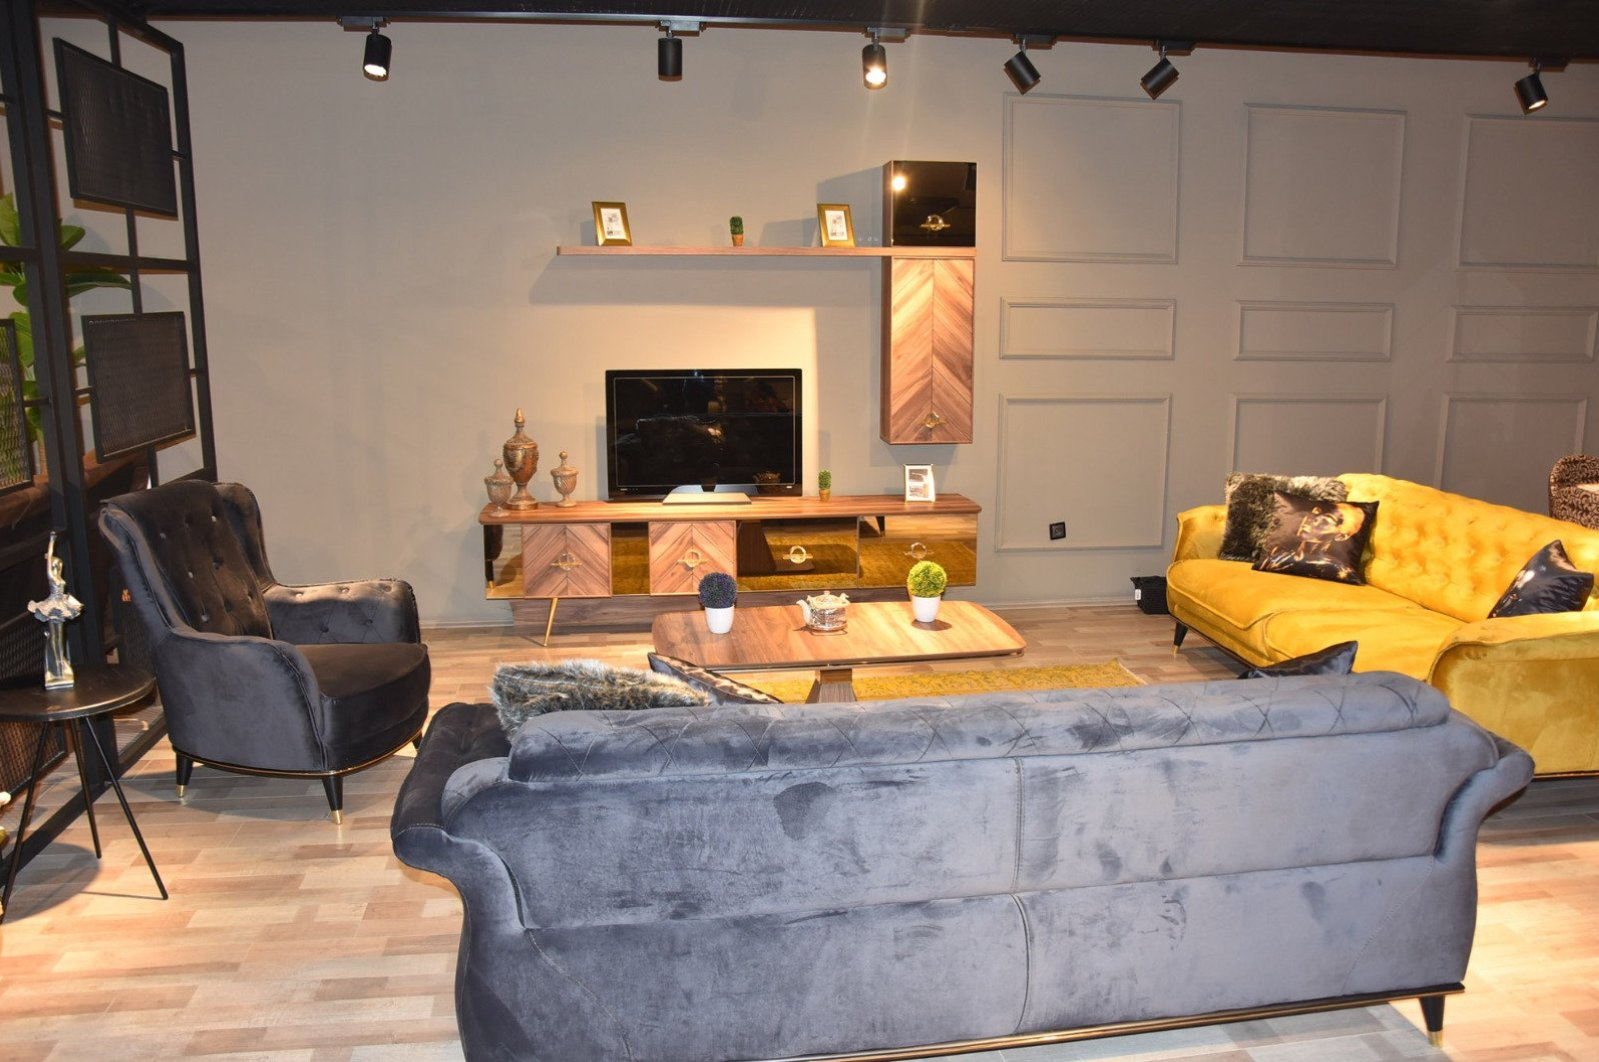 Furniture is seen in a store in the Inegöl district of Turkey's northwestern province of Bursa. (File Photo)